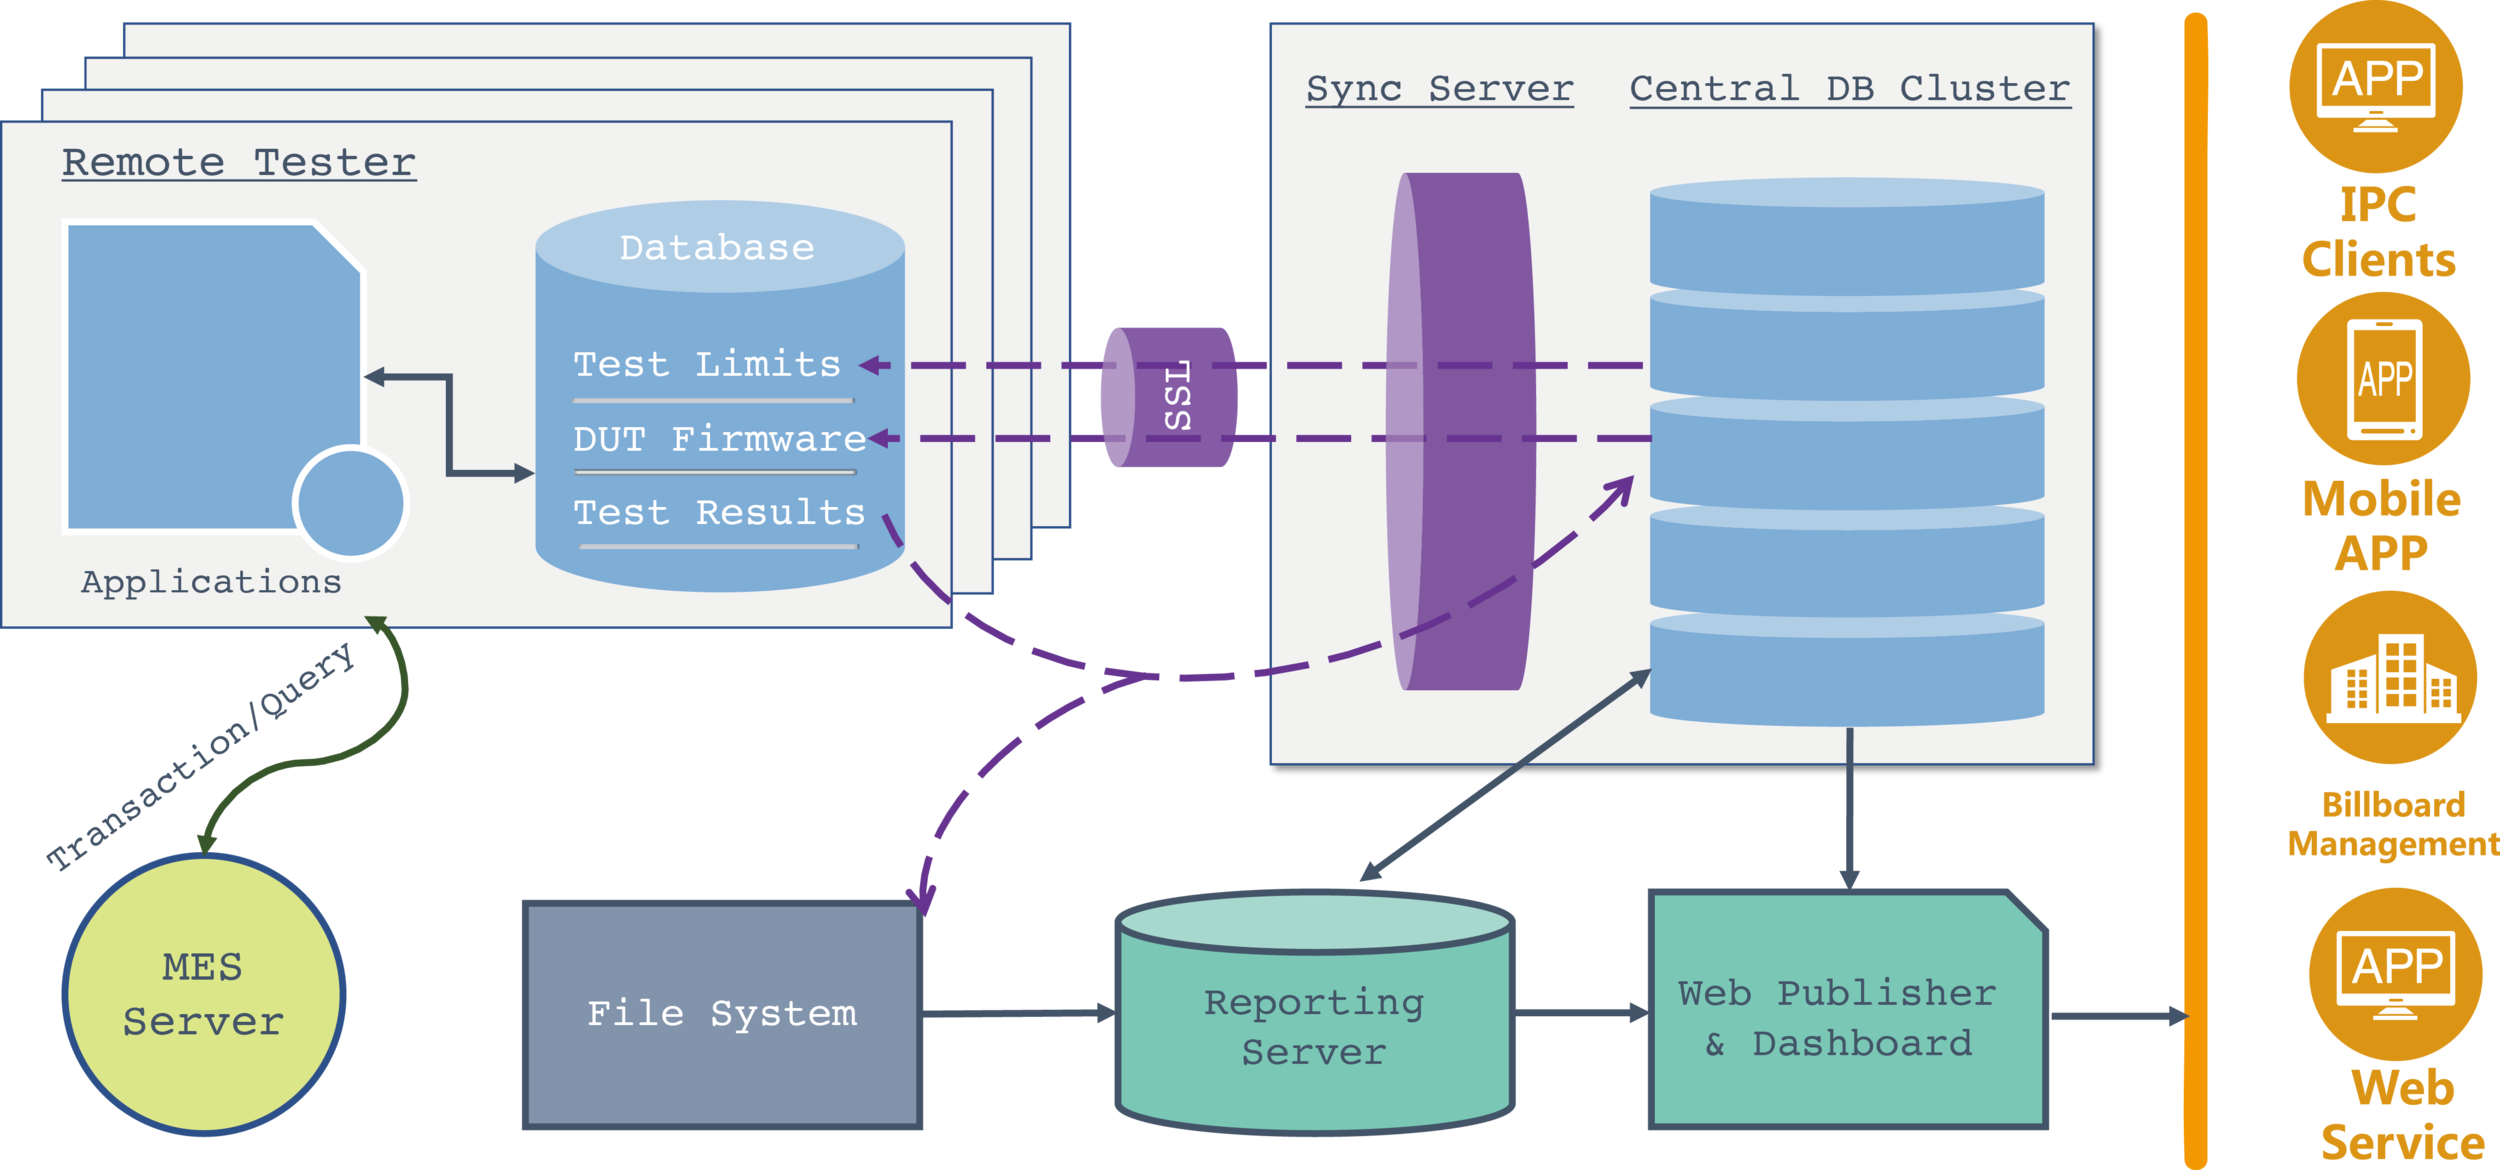 Database Deployment - Many OEMs can not put their test data together to get most useful information. The data is scattered across numerous test stations, in different formats, requiring lots of work to manage it.We manage test configuration from company central server to local test stations across the world, and synchronize test results back for real time monitoring.